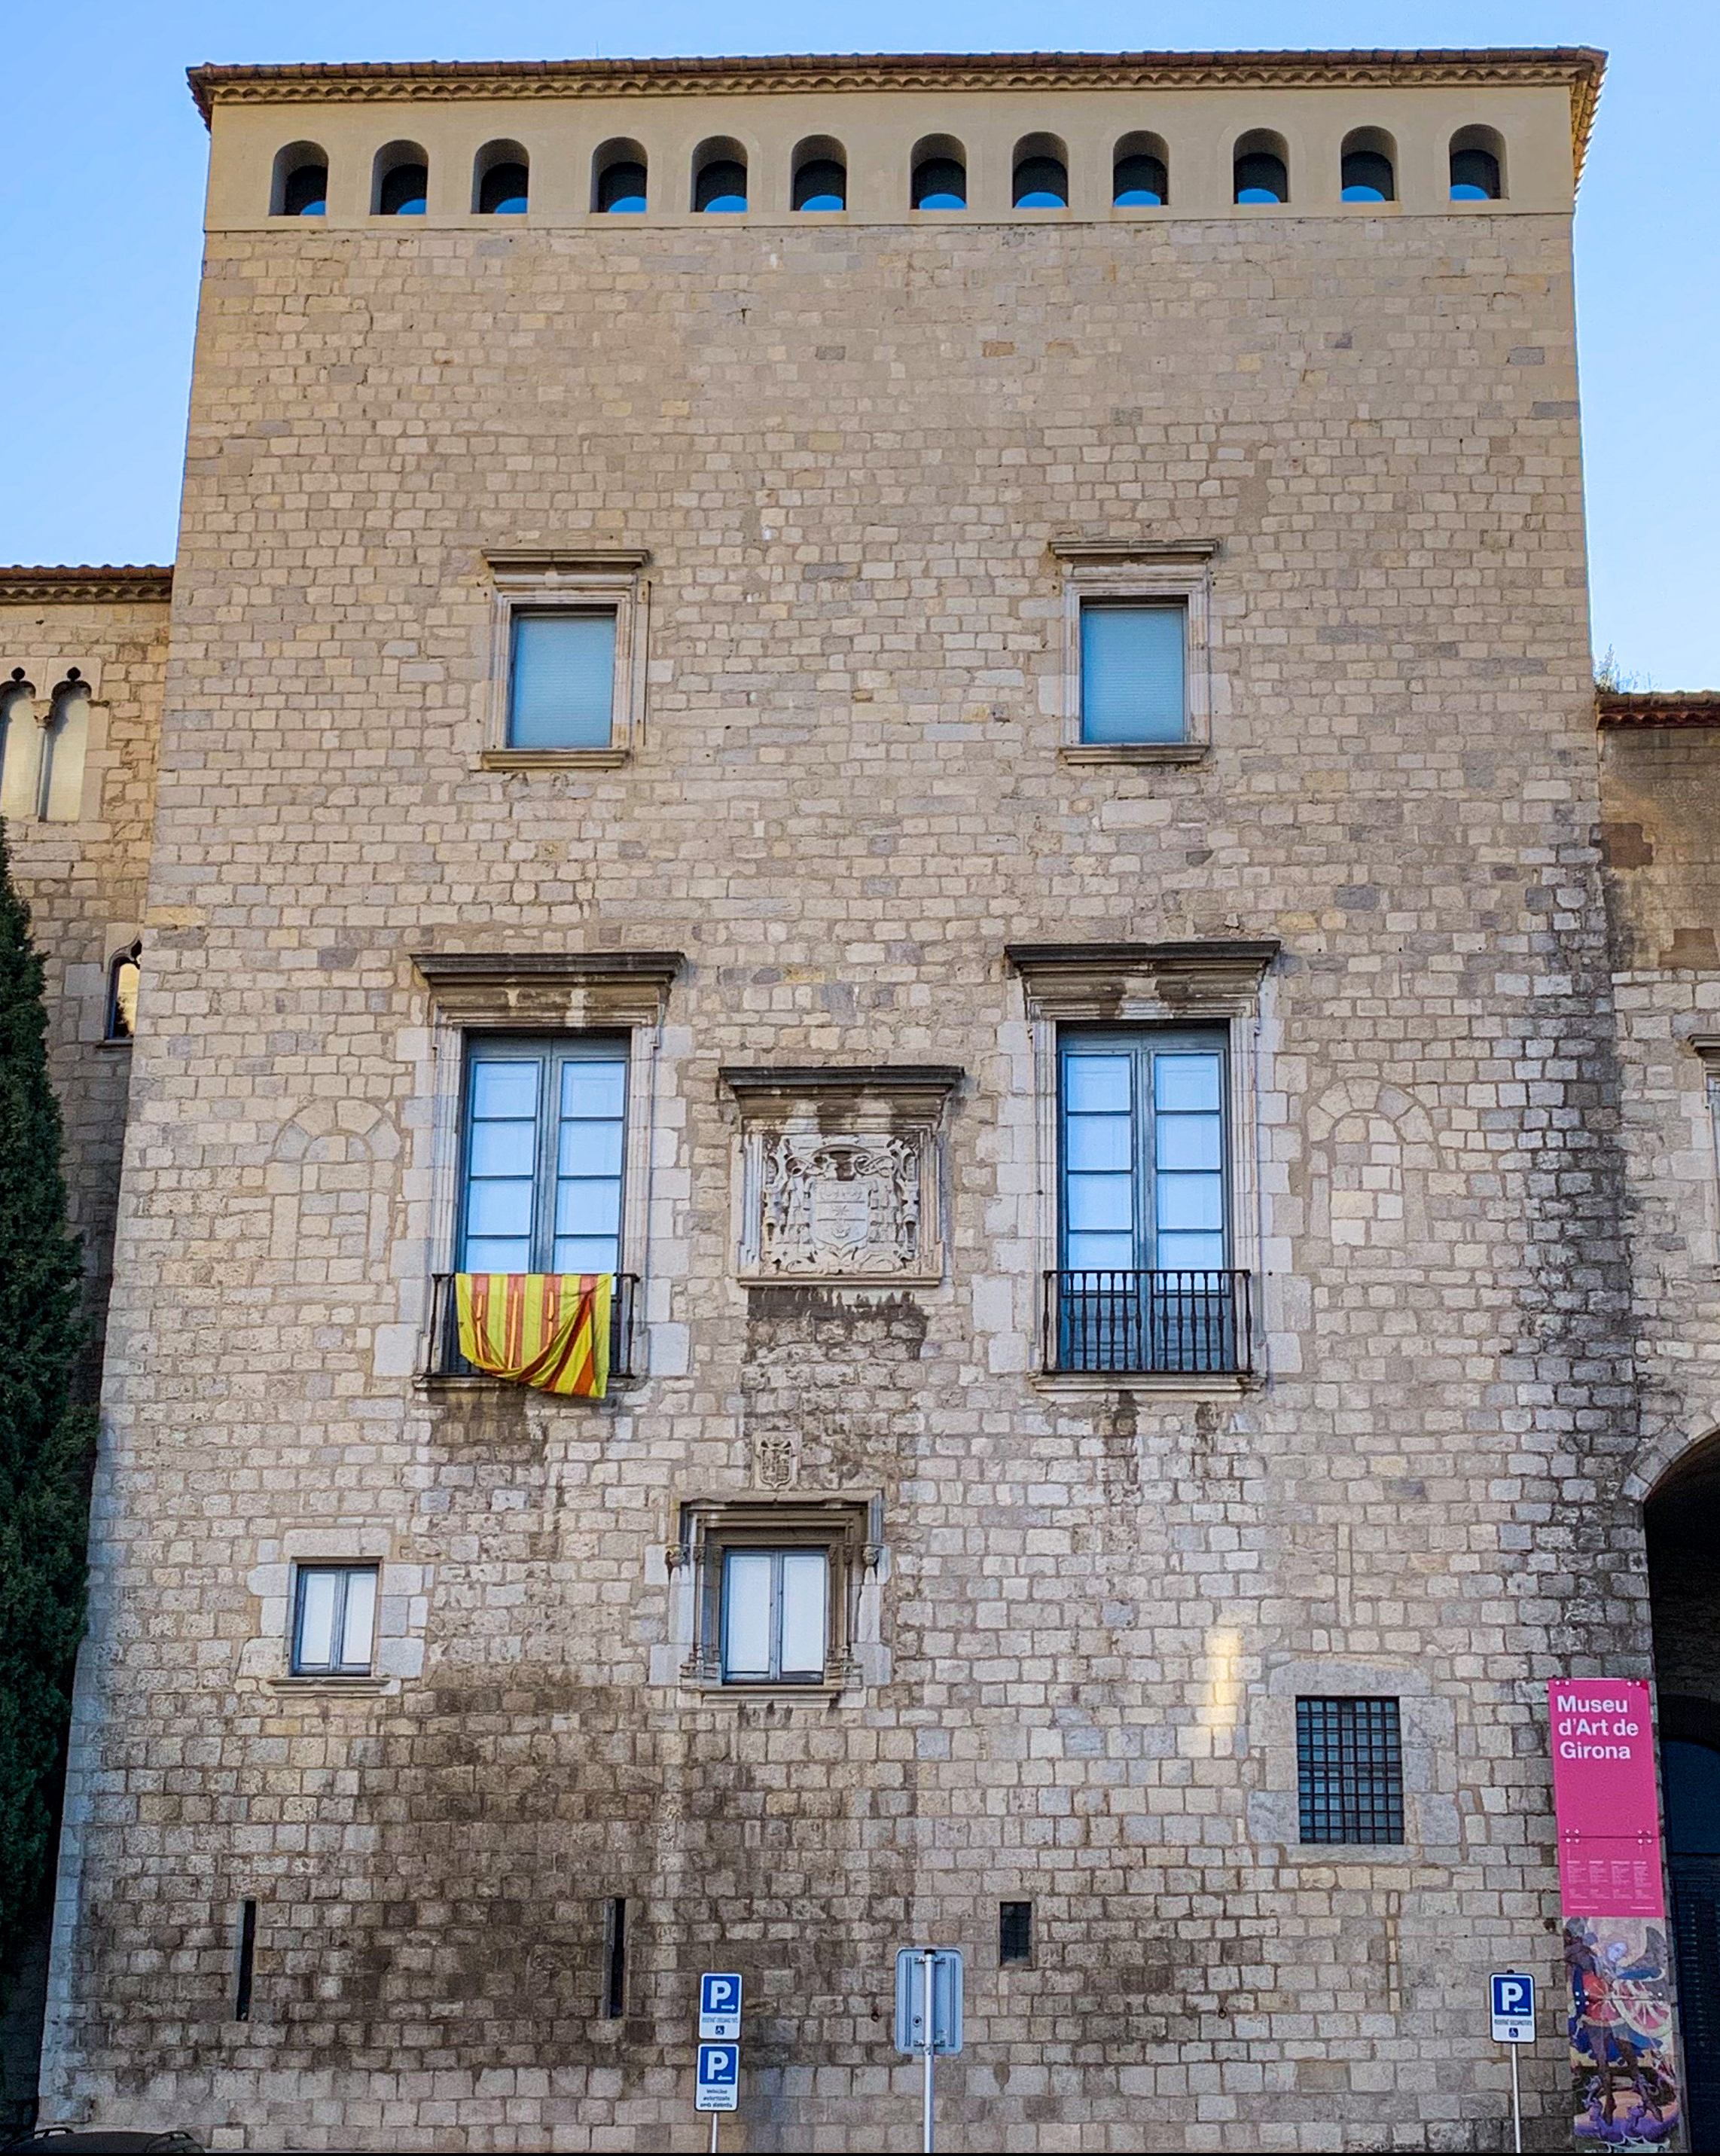 Front face of a beige stone building. TO the far right is a hot pink sign that says Museu d'Art de Girona. In the center of the building are two double pane windows. One has a yellow and red striped flag hanging off the balcony.